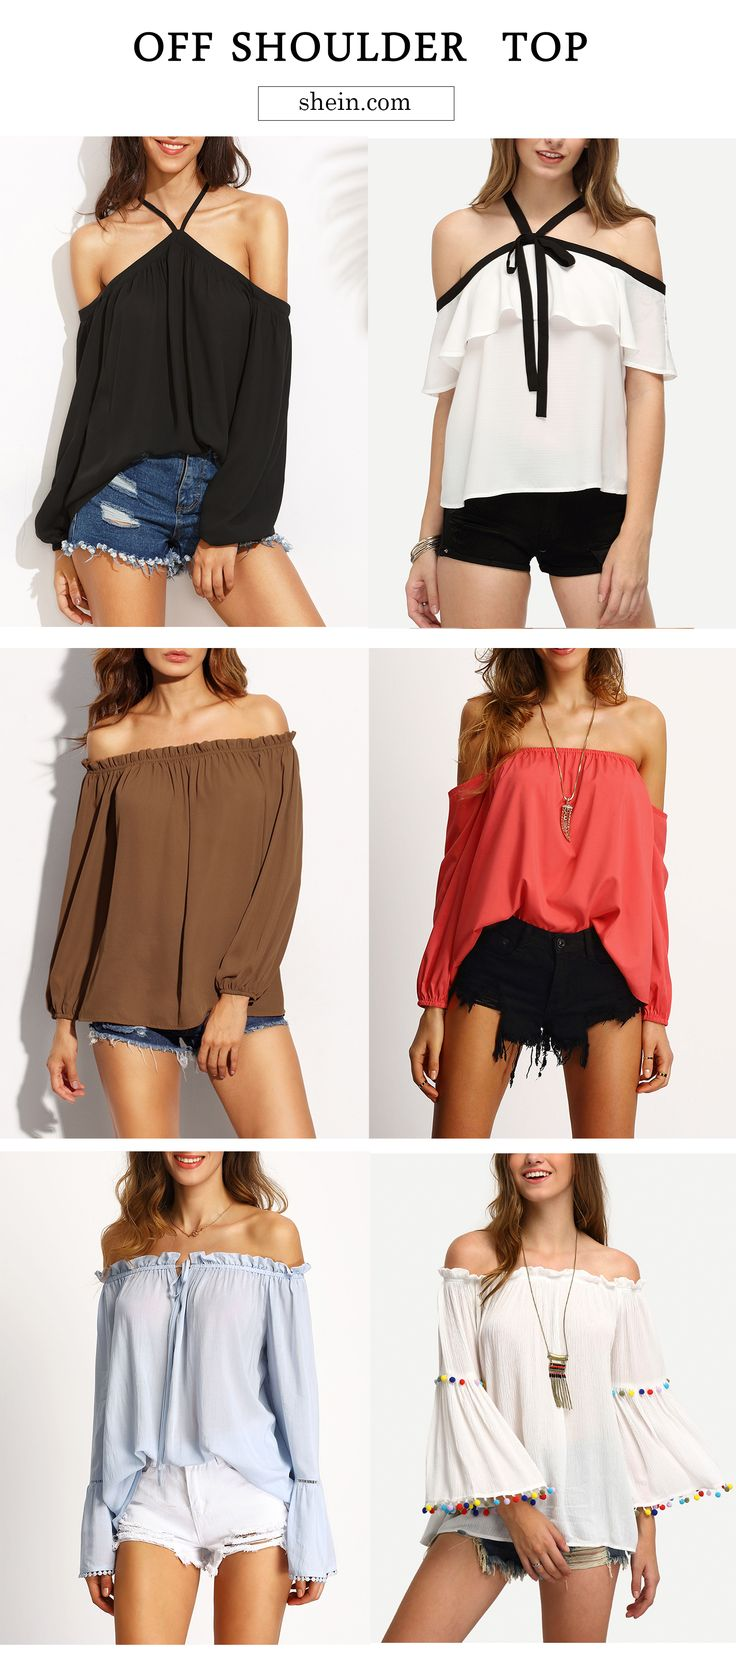 The most hot items! Off shoulder top love still lasts for our fall! Up to 70% off now!